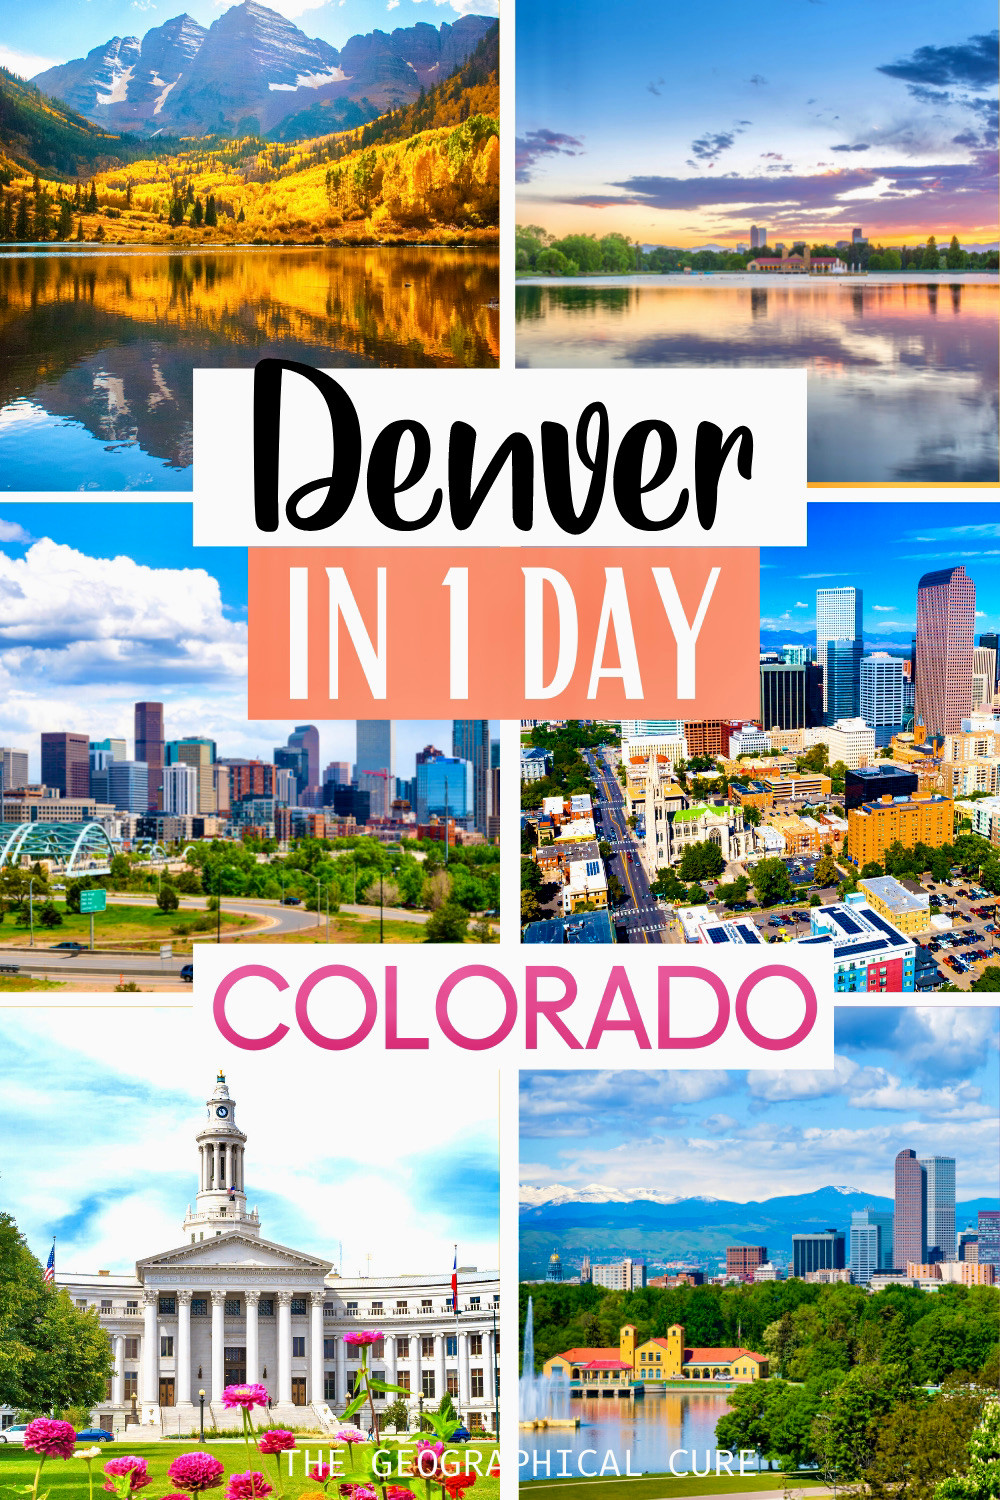 ultimate guide to spending one day in Denver Colorado